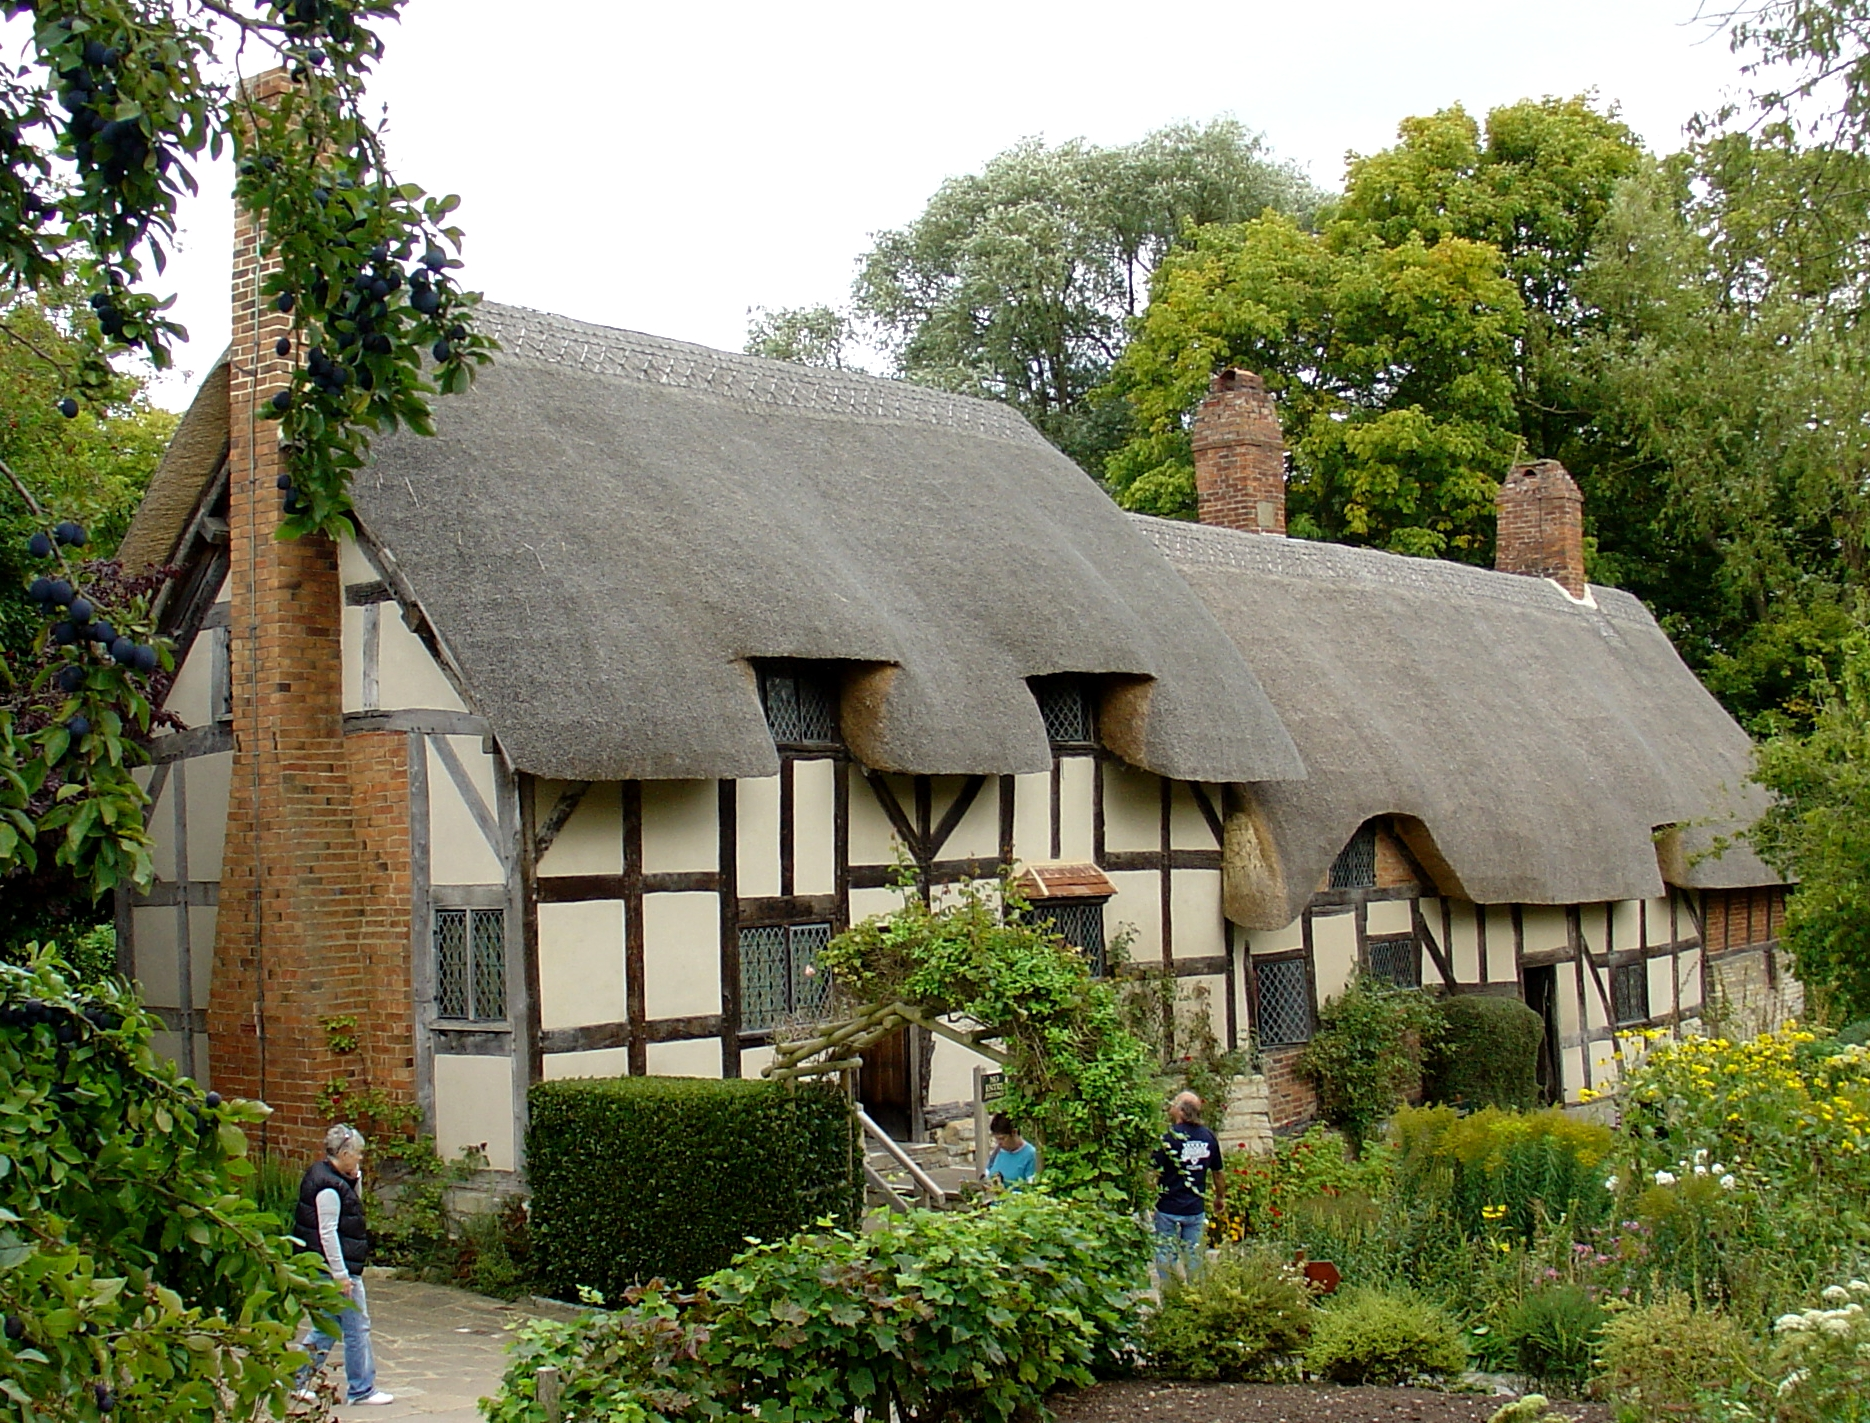 File:Hathaway Cottage.jpg - Wikipedia